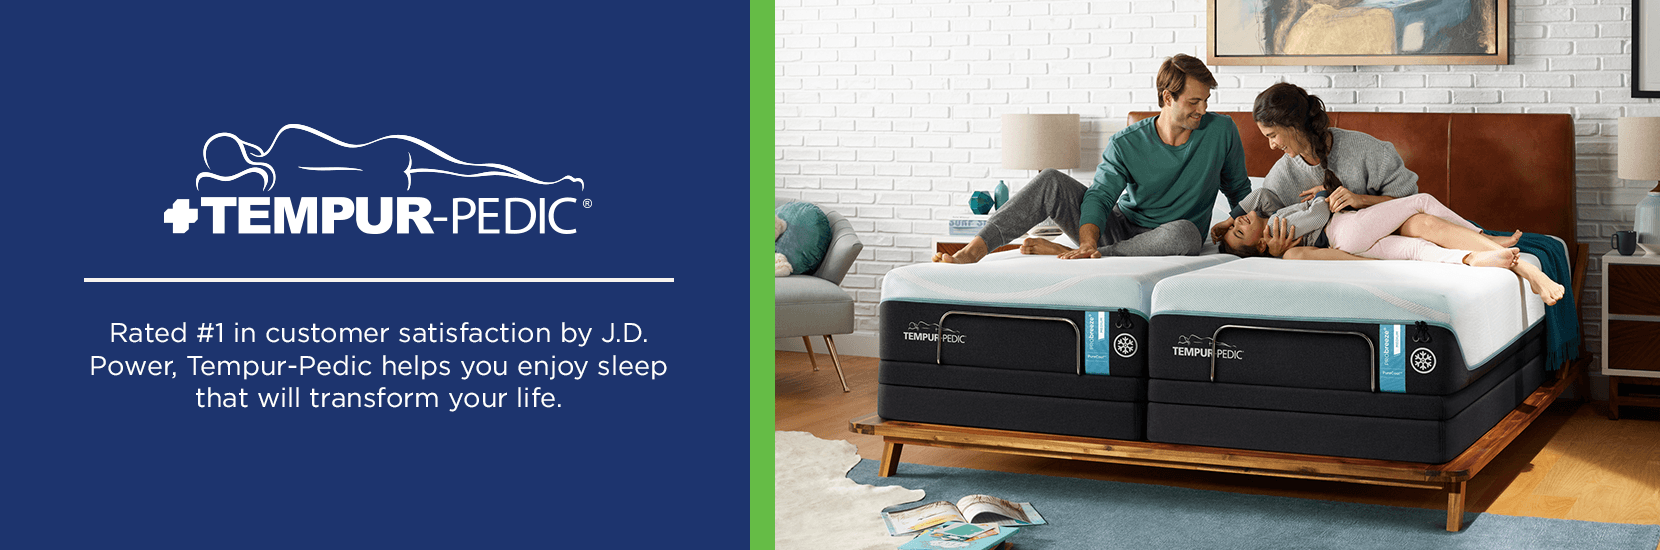 Rated #1 in customer satisfaction by J.D. Power, Tempur-Pedic helps you enjoy sleep that will transform your life.